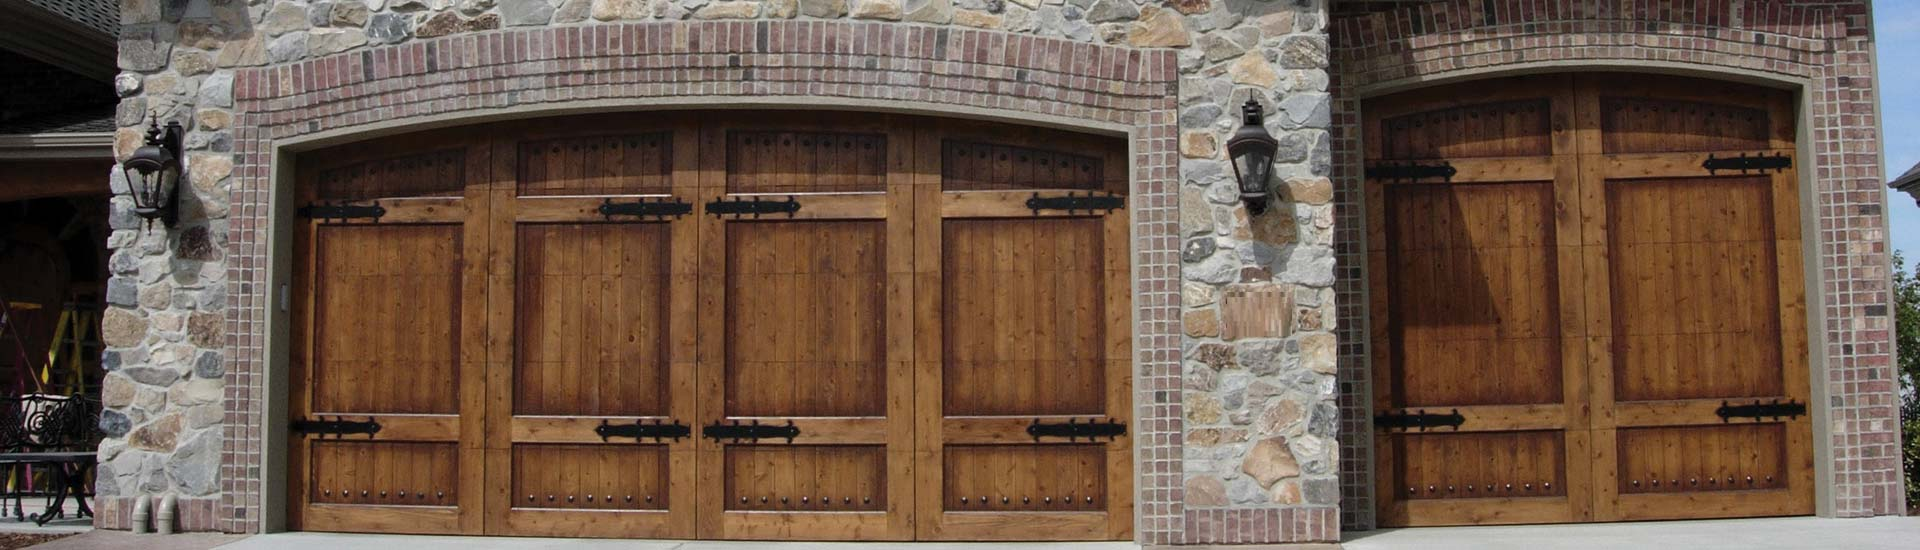 Fort Worth, TX Residential Garage Doors Repairs, Replacement, Installation